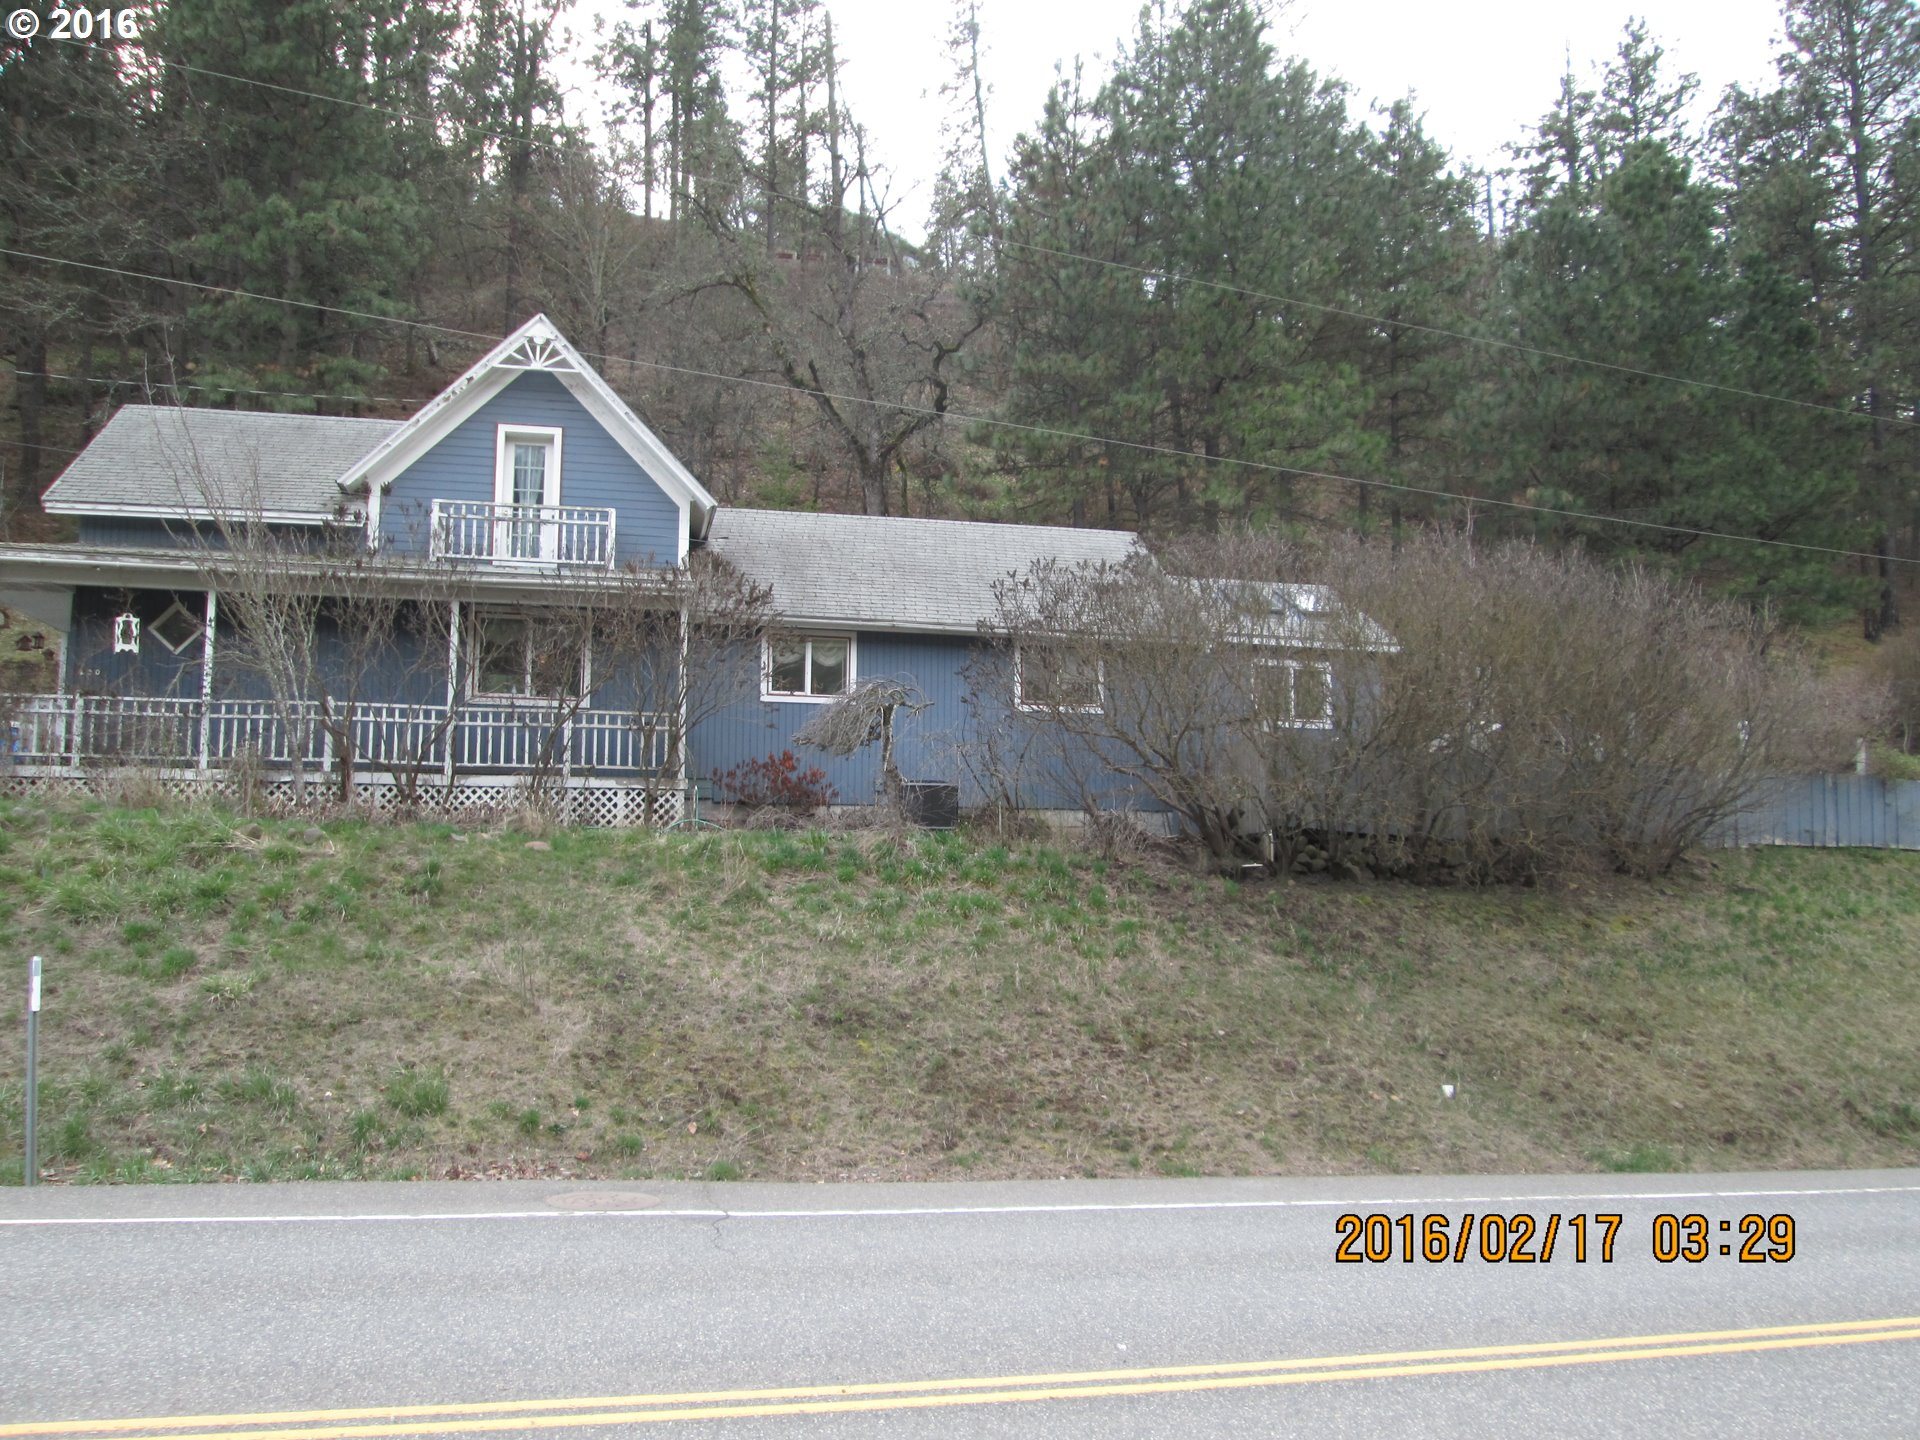 200 THIRD AVE, Mosier, OR 97040